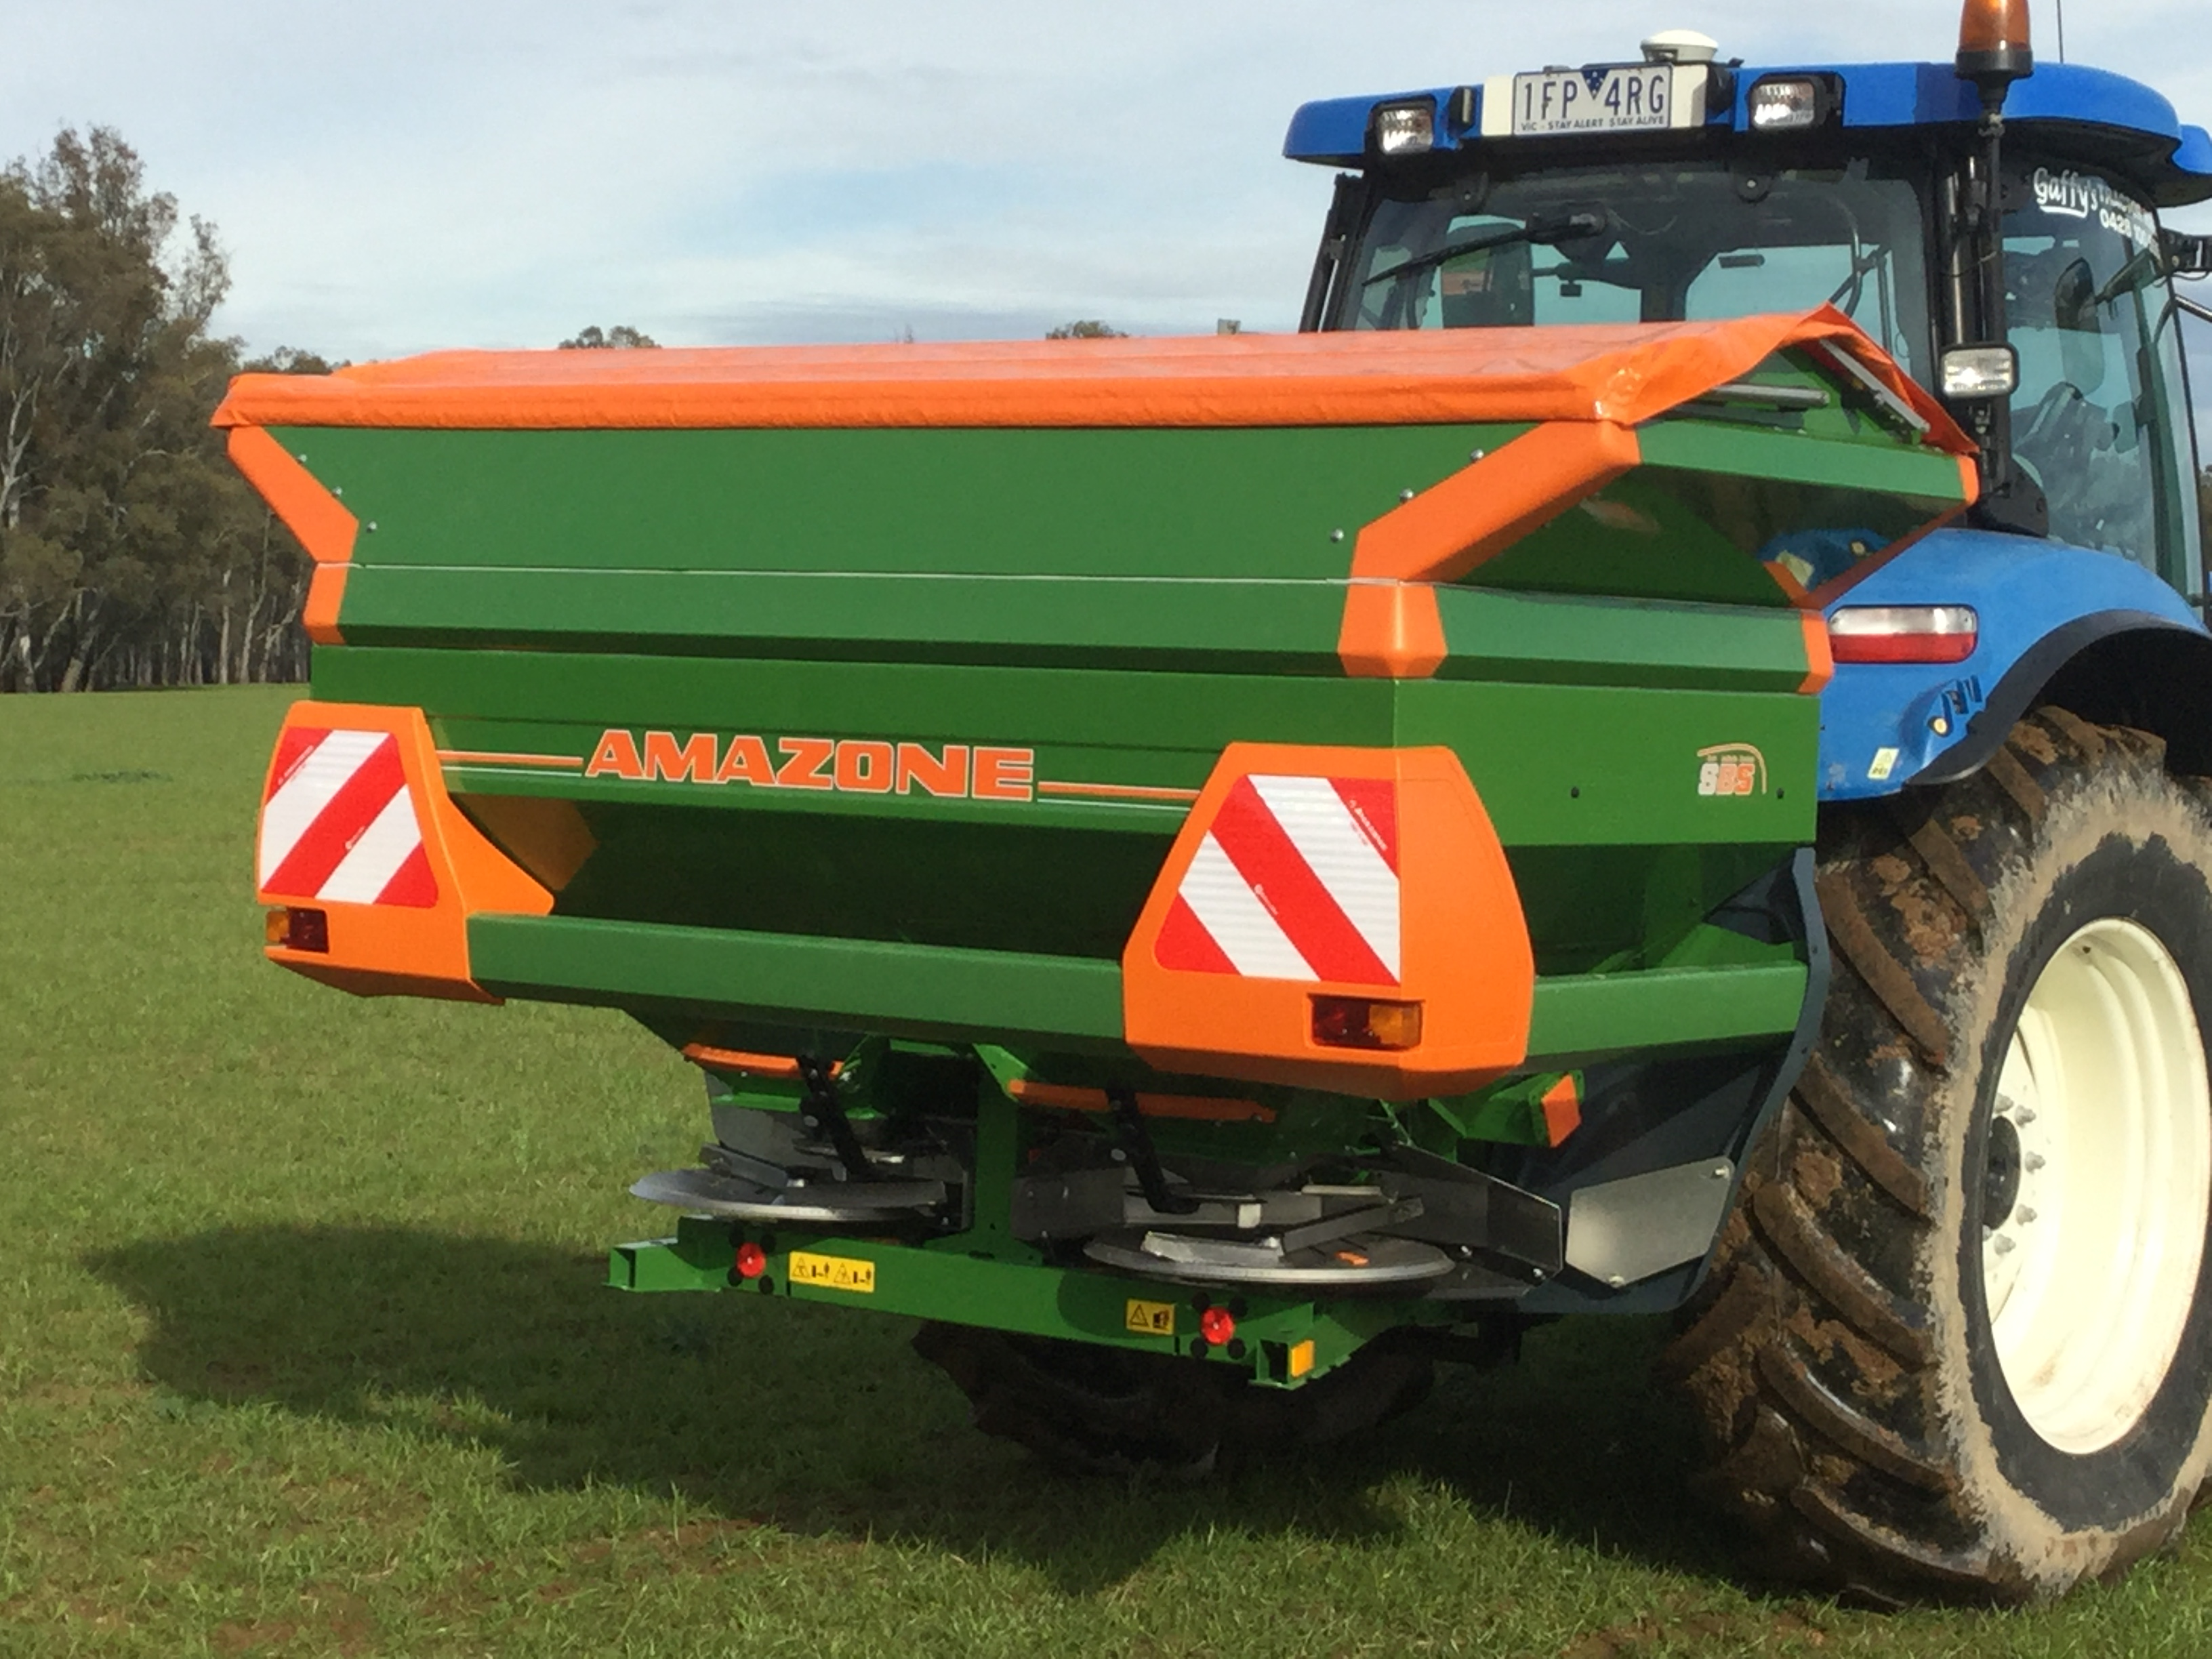 Amazone Fertilizer Spreader